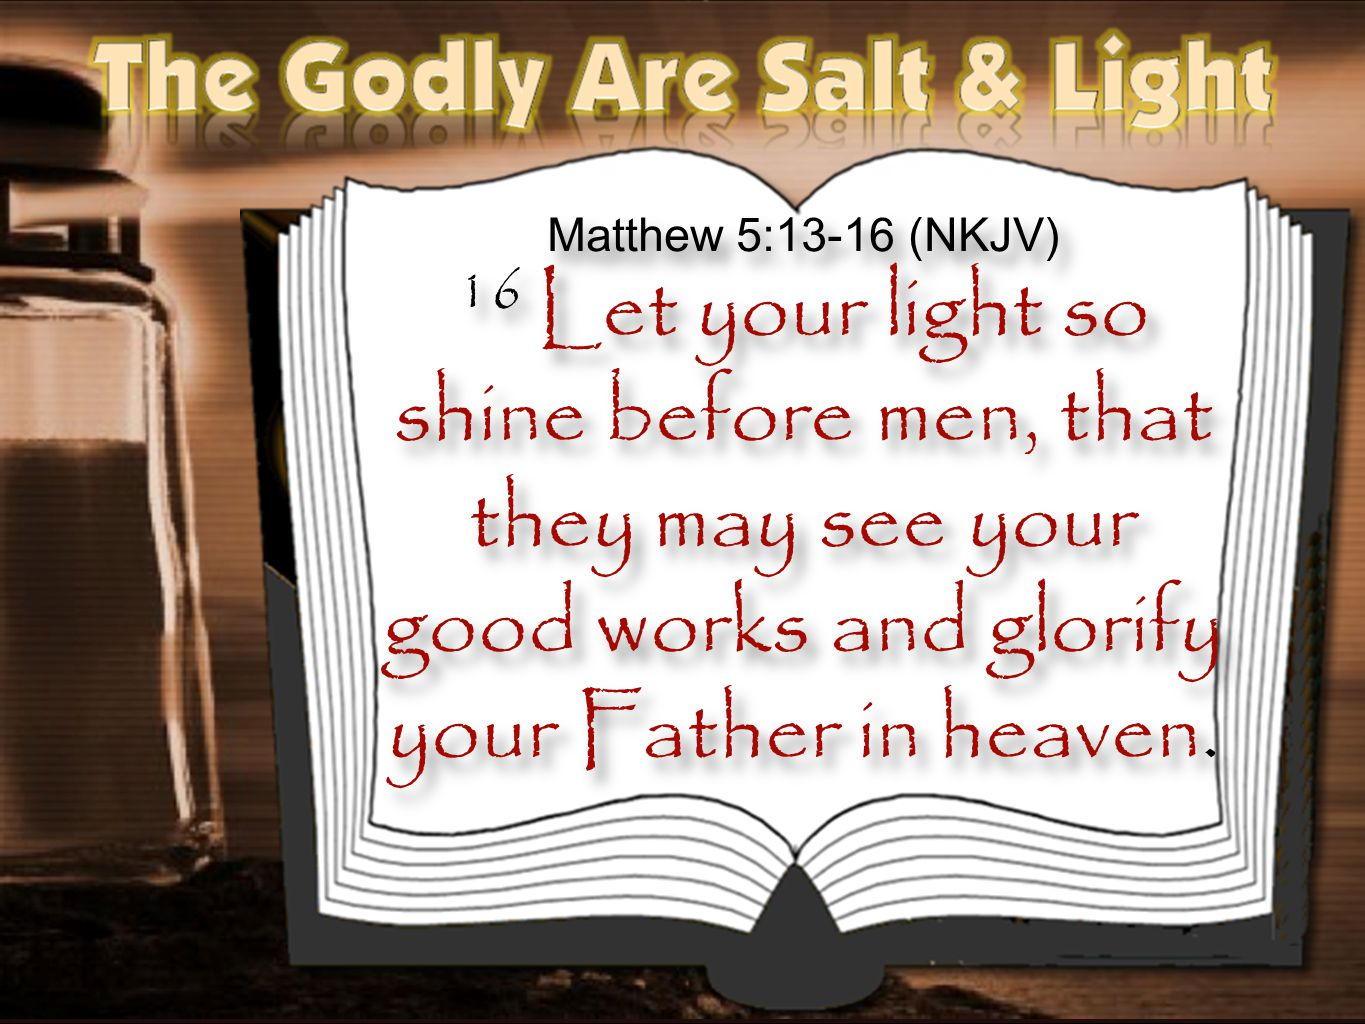 Matthew 5:13-16 (NKJV) 16 Let your light so shine before men, that they may see your good works and glorify your Father in heaven.